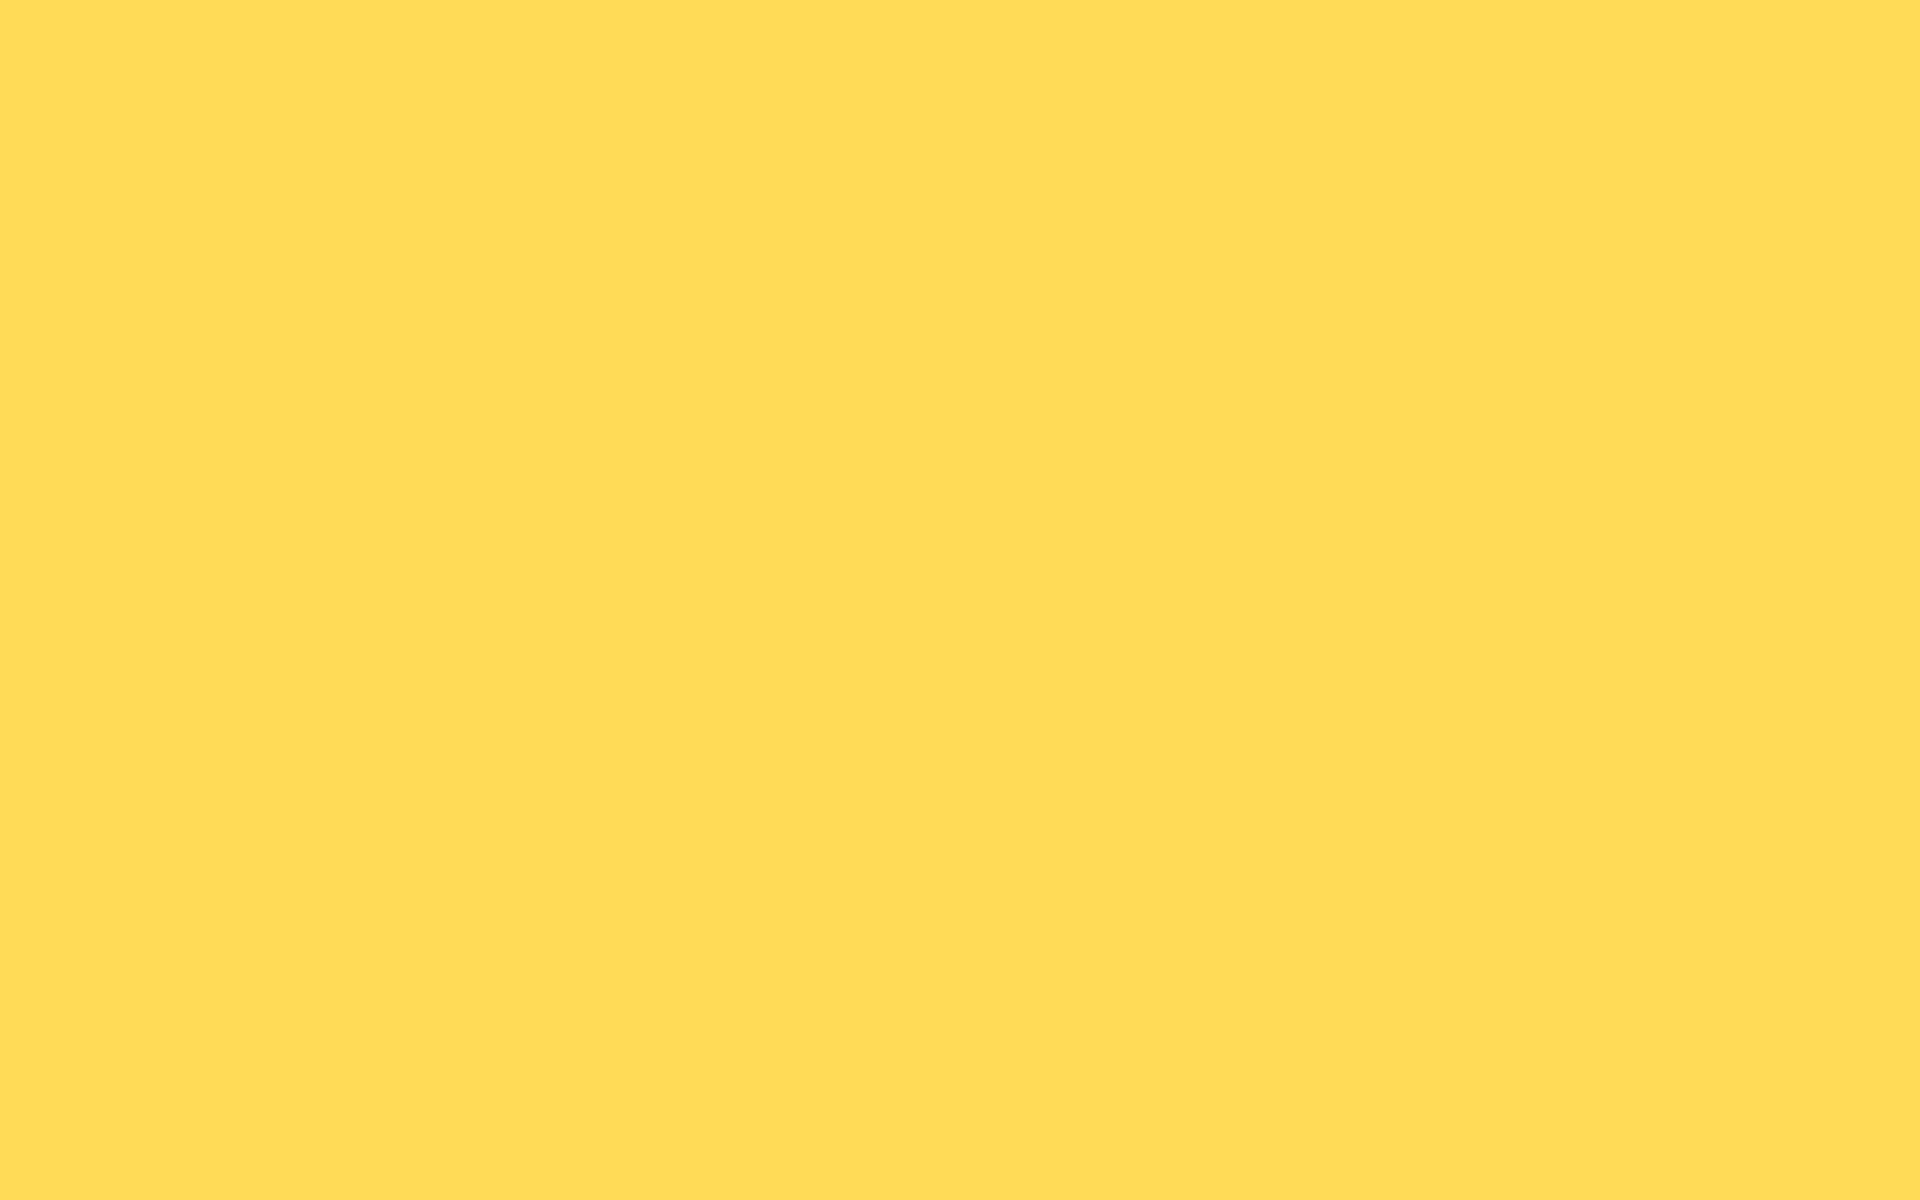 1920x1200 Mustard Solid Color Background